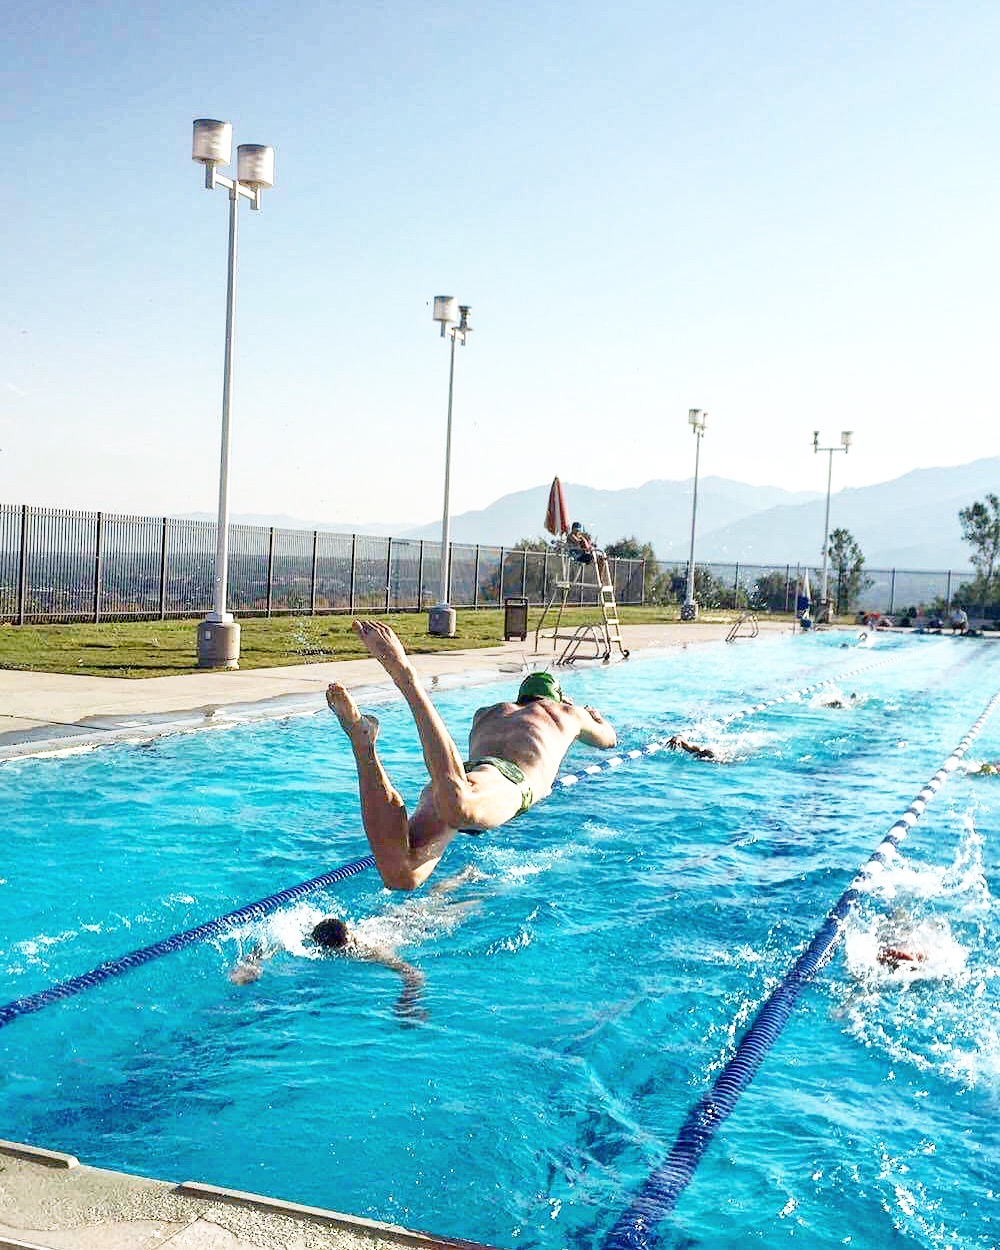 triathlon-swim-draper-outdoor-pool.jpg